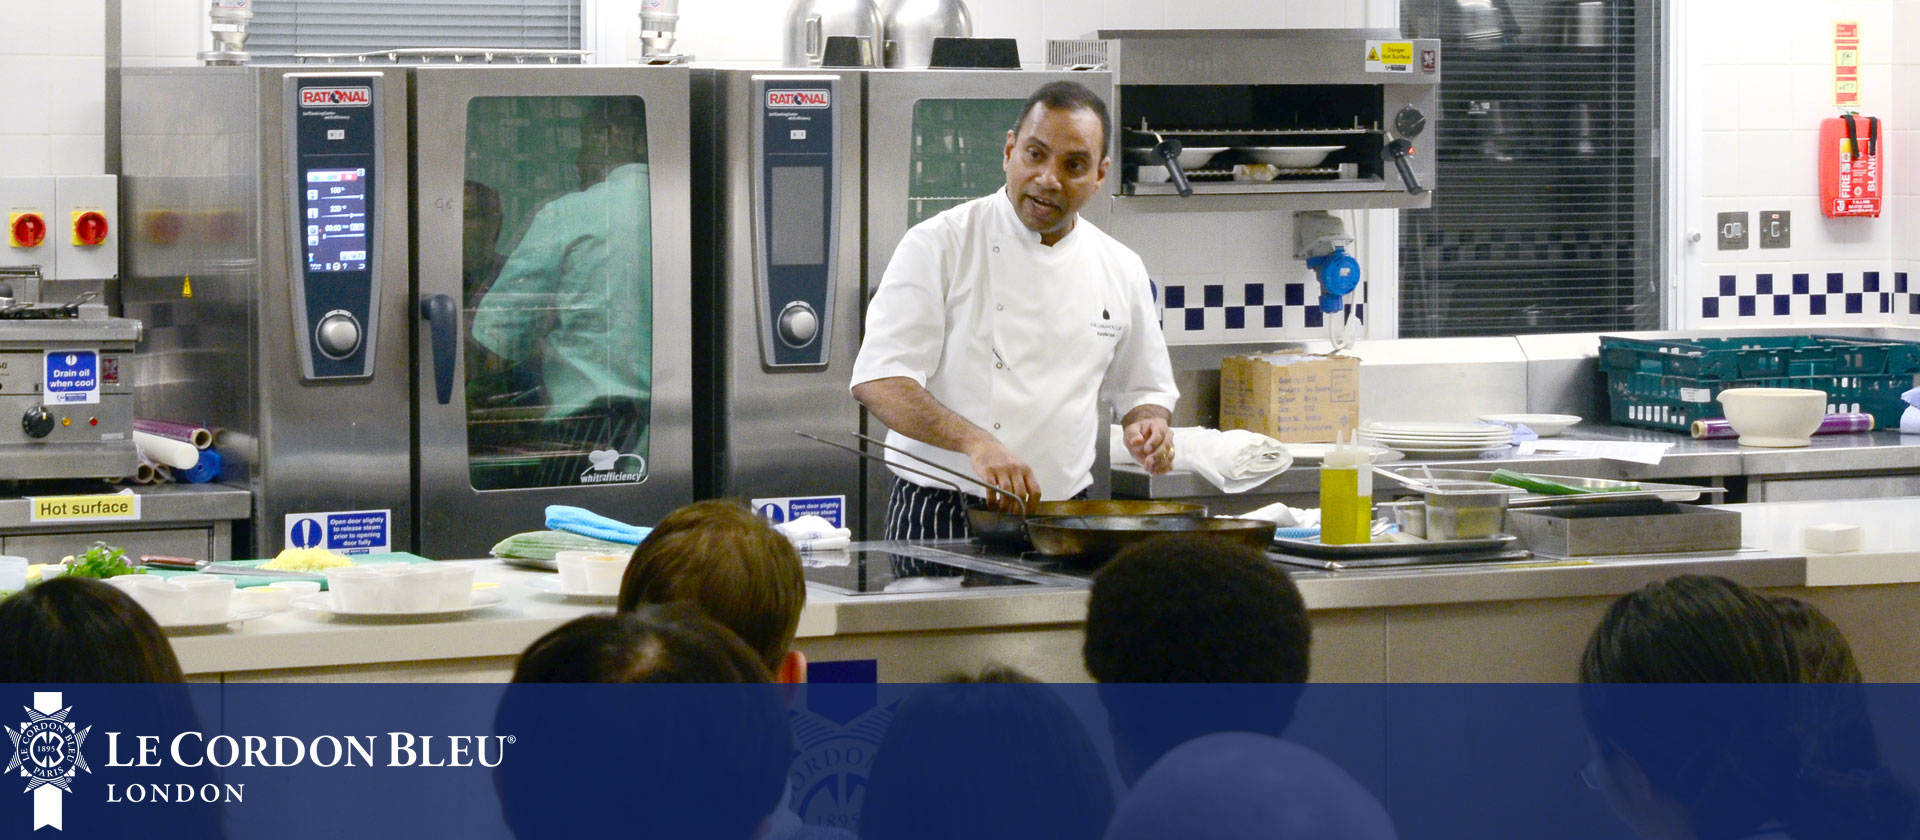 Rakesh Nair visits Le Cordon Bleu London